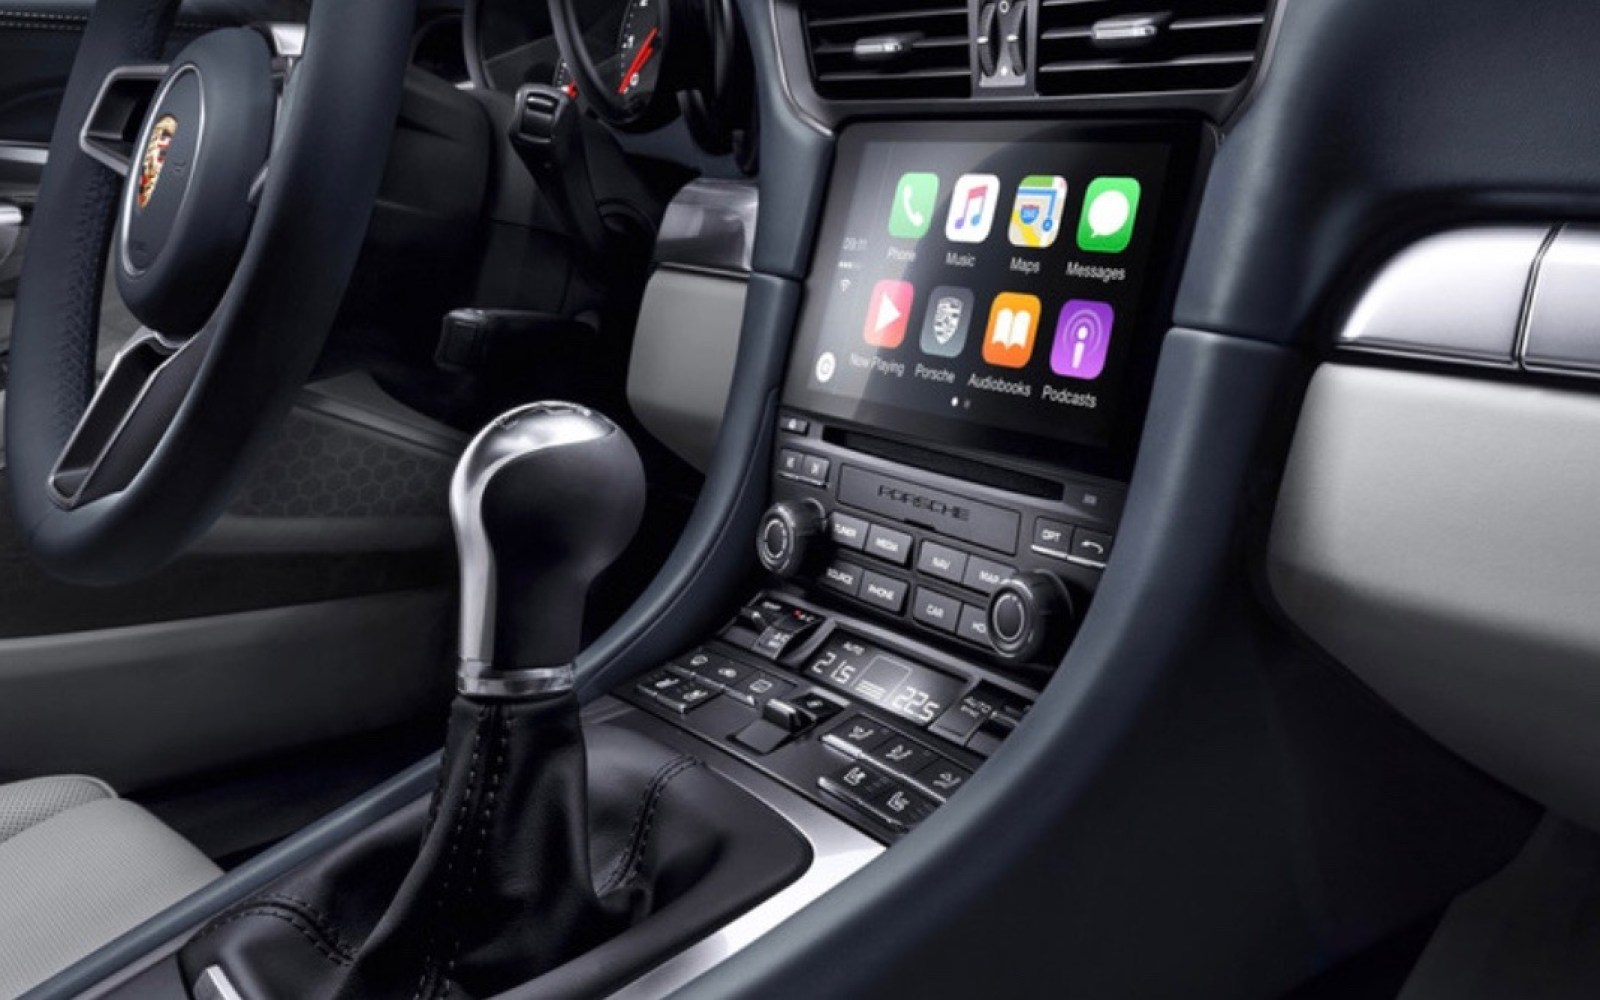 Porsche CEO says 'iPhone belongs in your pocket, not on the road', dismissing autonomous car future